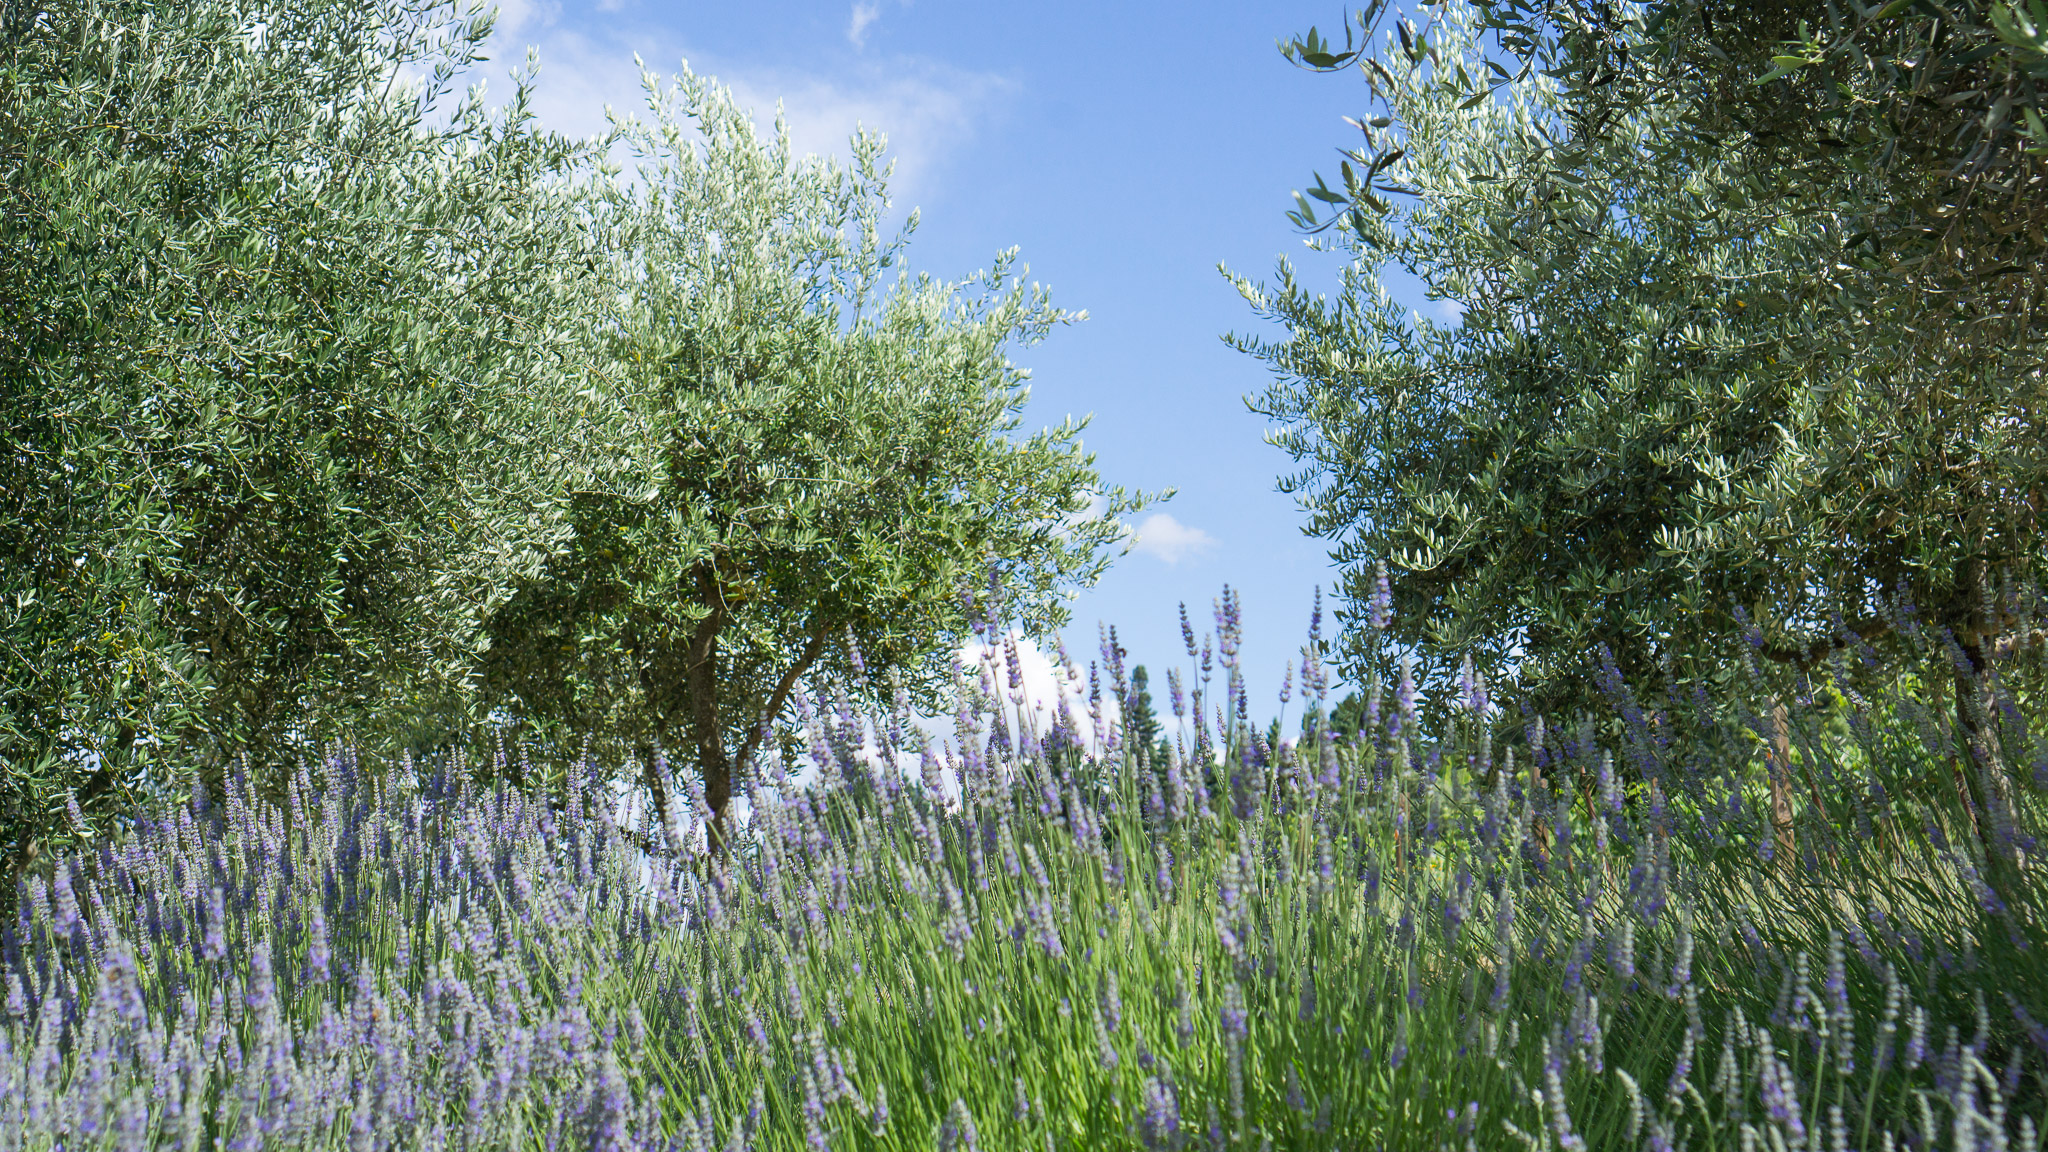 I couldn't get over the fresh lavender fields in the area!